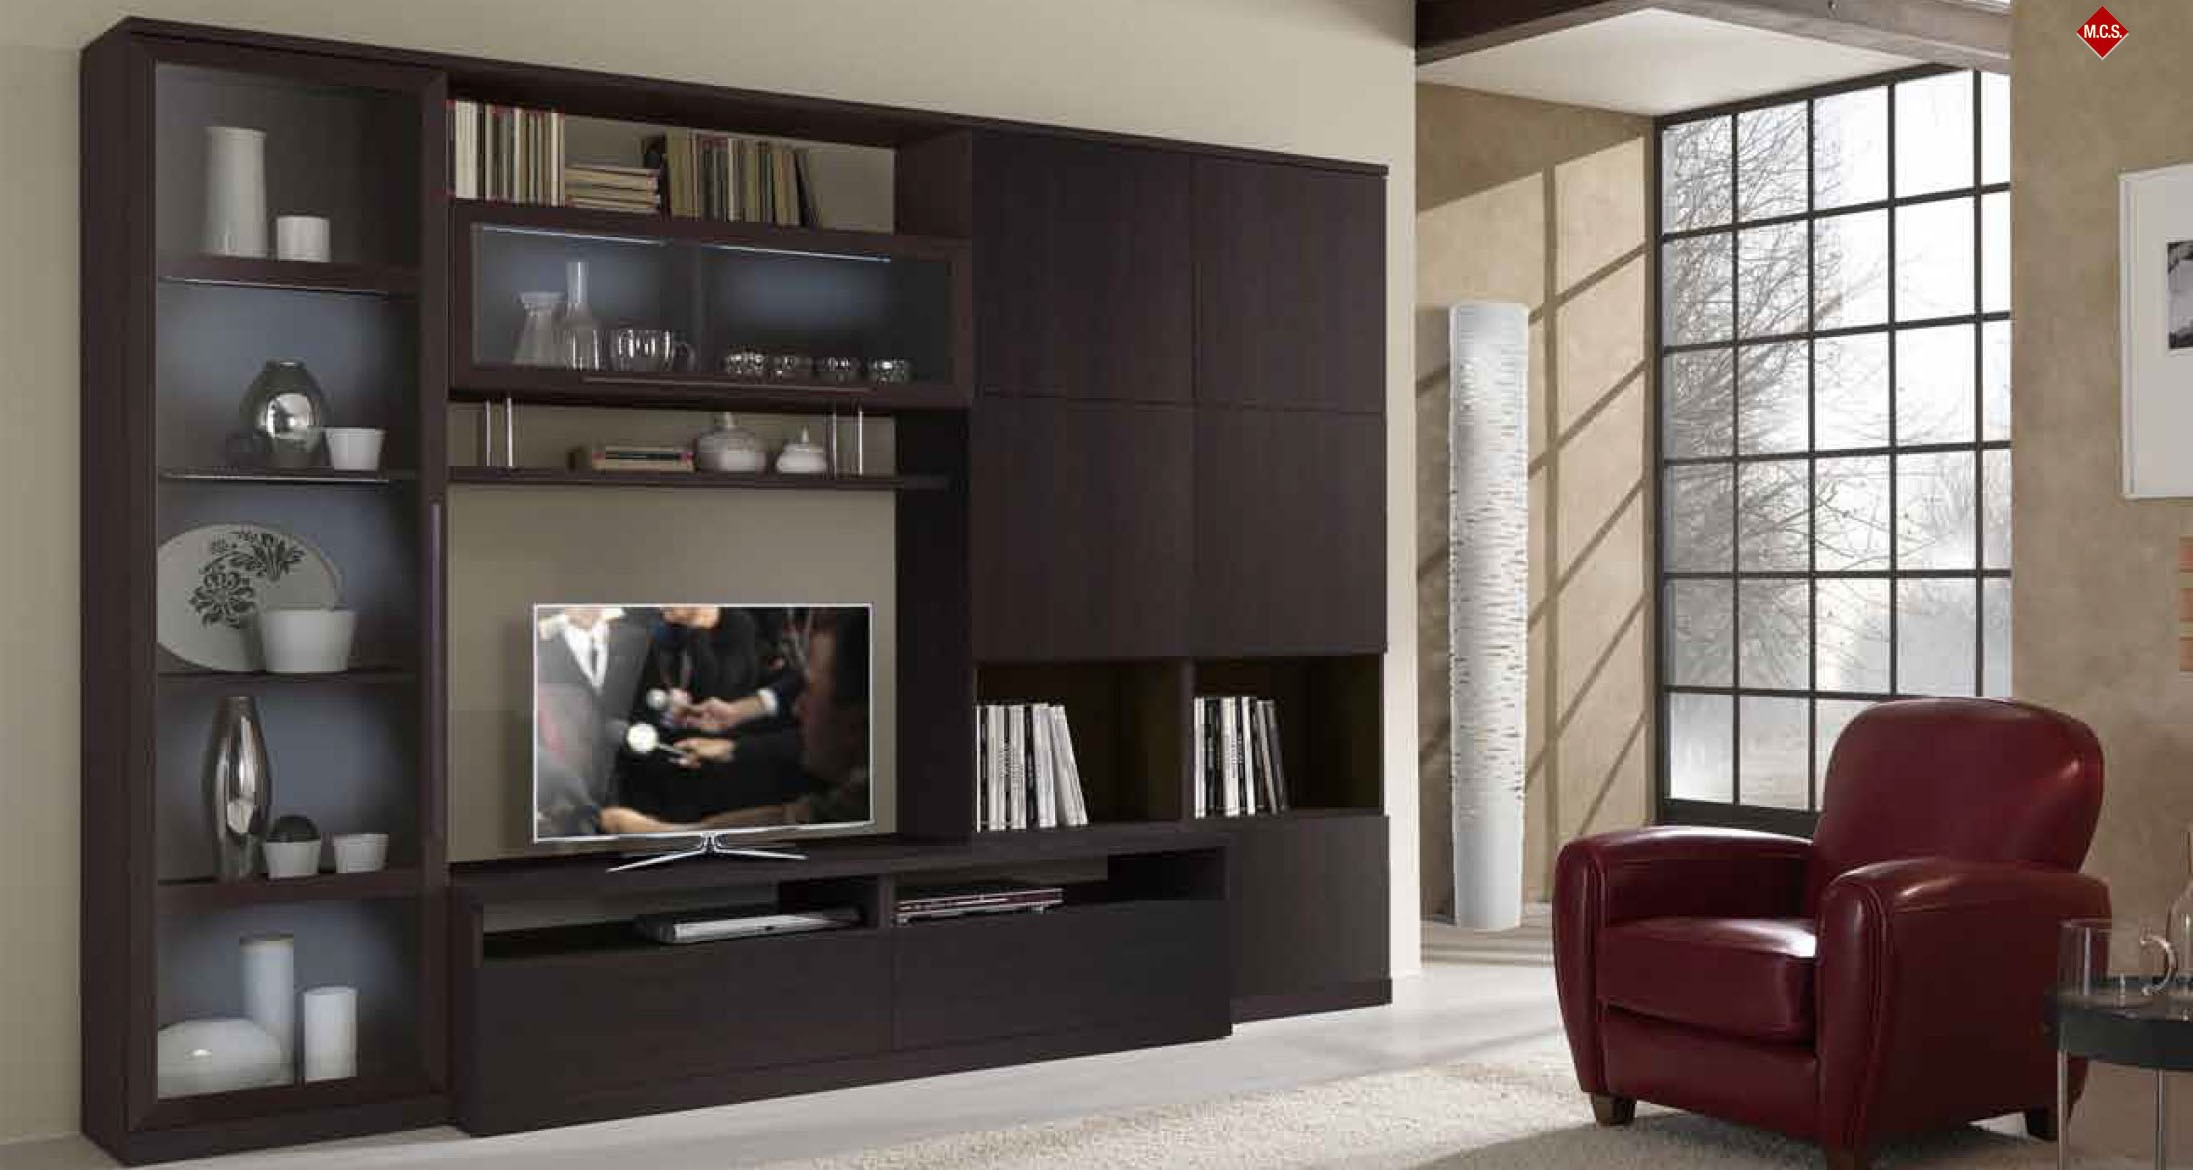 Cabinet Design For Living Room 20 modern tv unit design ideas for bedroom & living room with pictures